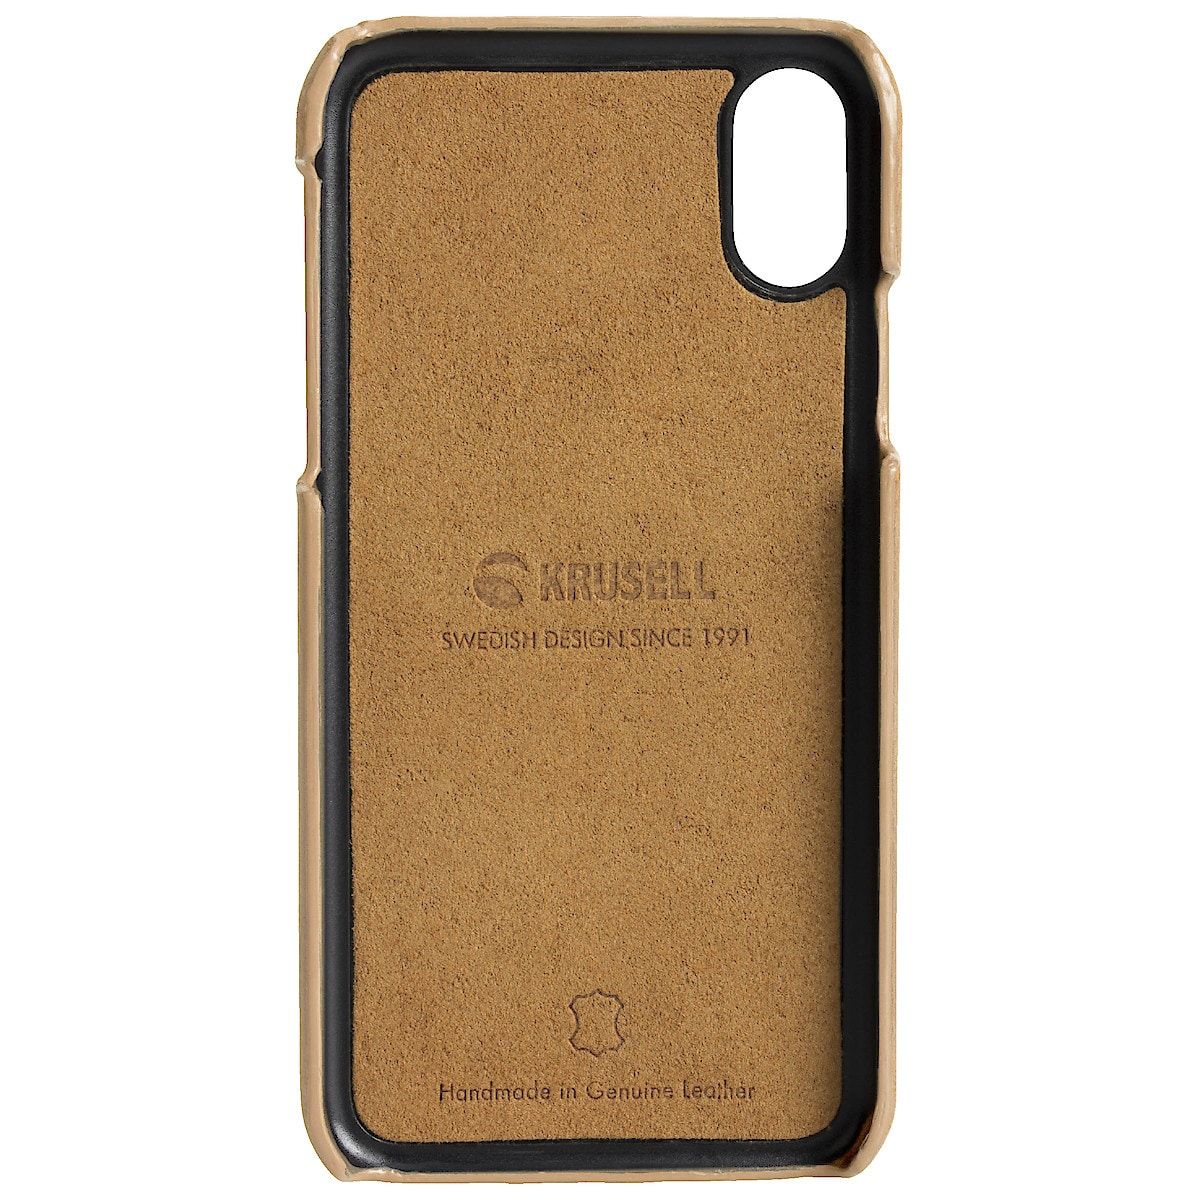 Krusell Sunne lommebokfutteral for iPhone X/XS